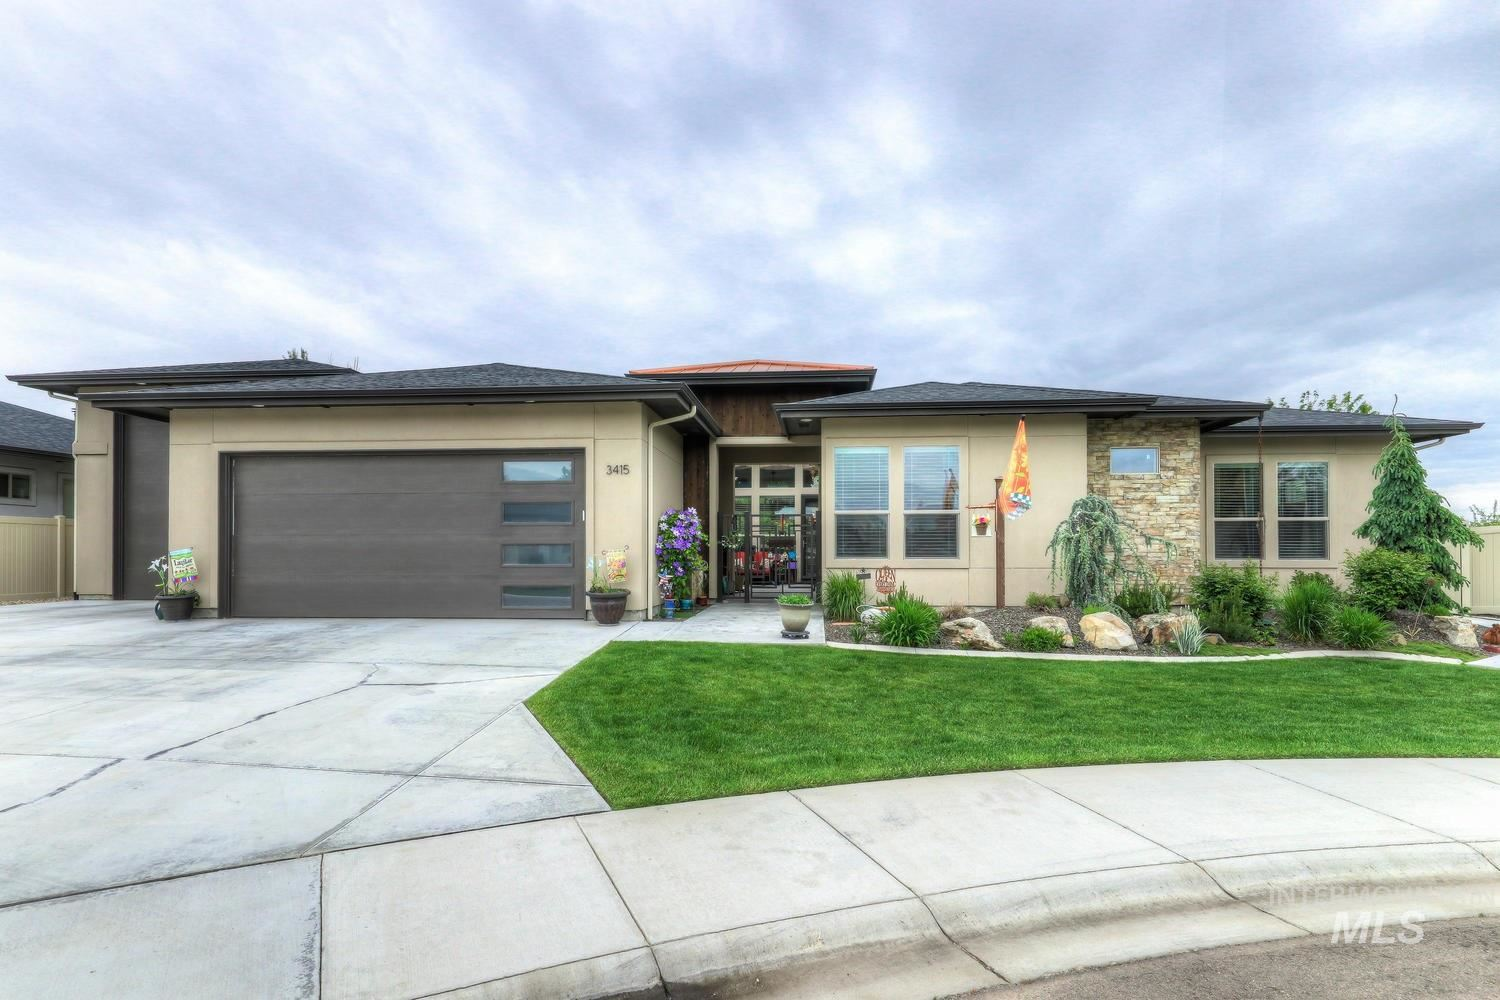 3415 E. Accommodation Ct., Meridian, ID 83642-4101 - MLS#: 98767474